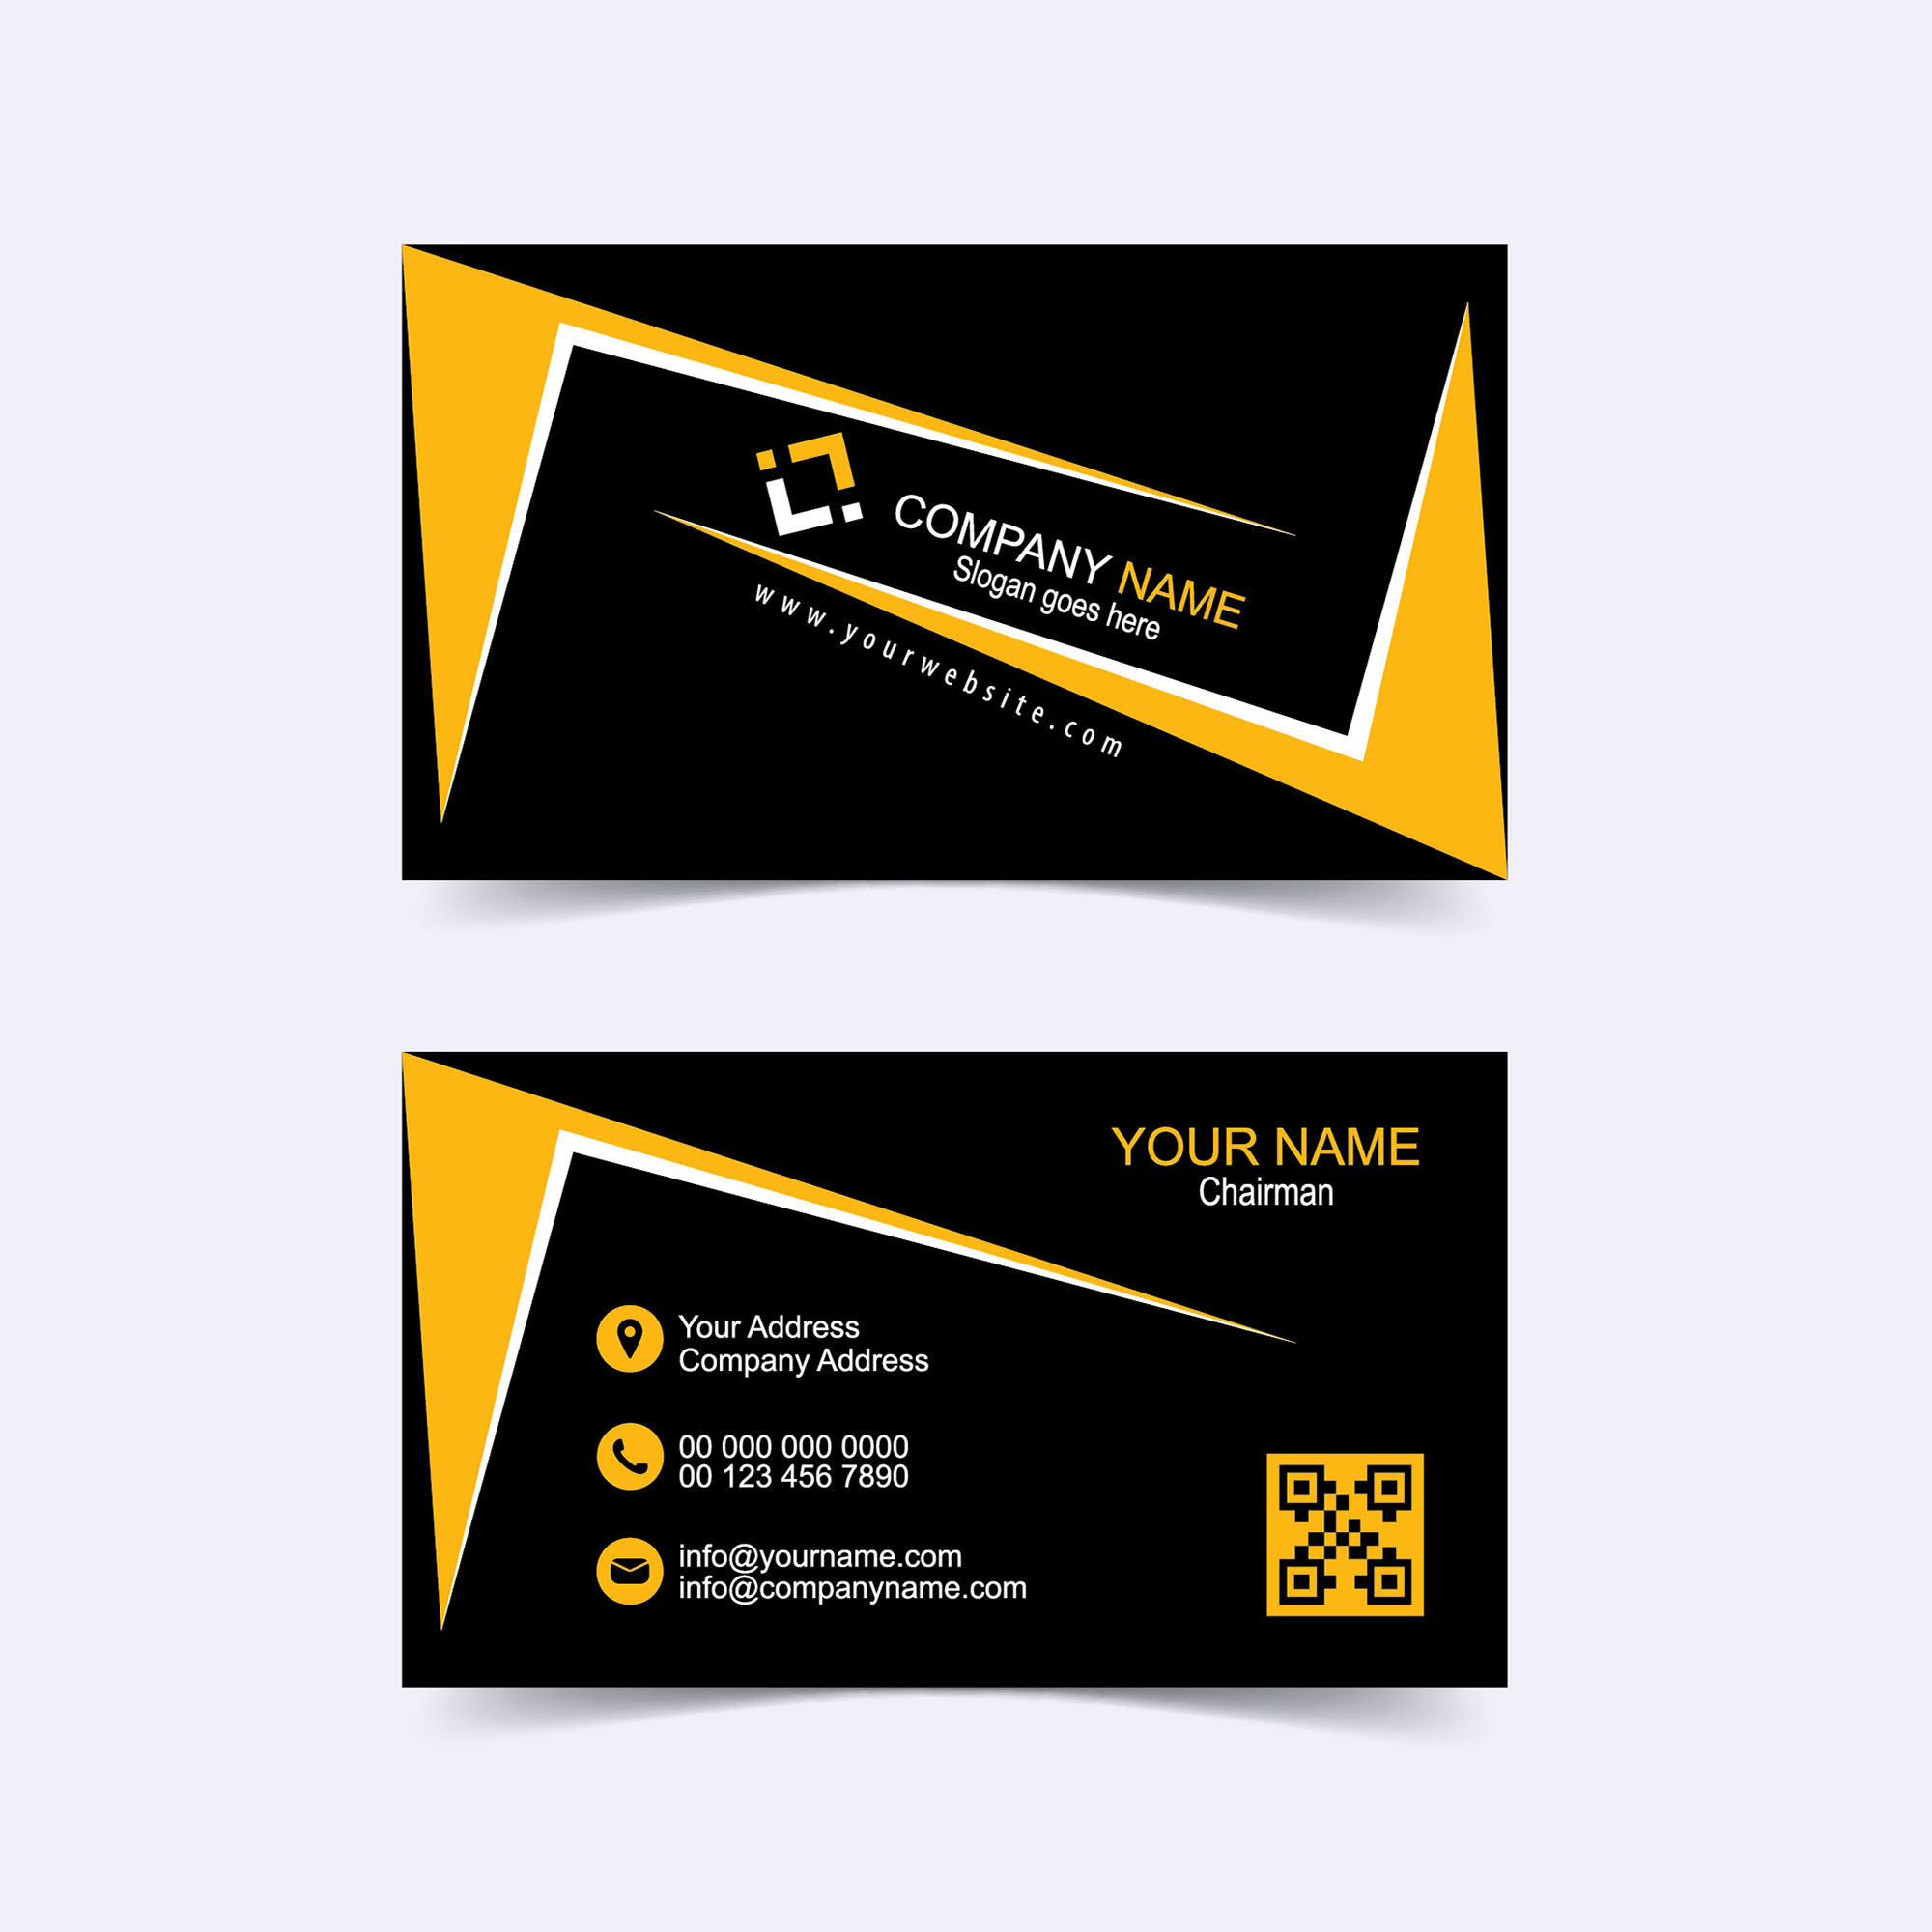 Modern business card template vector free download wisxi business card business cards business card design business card template design templates fbccfo Image collections